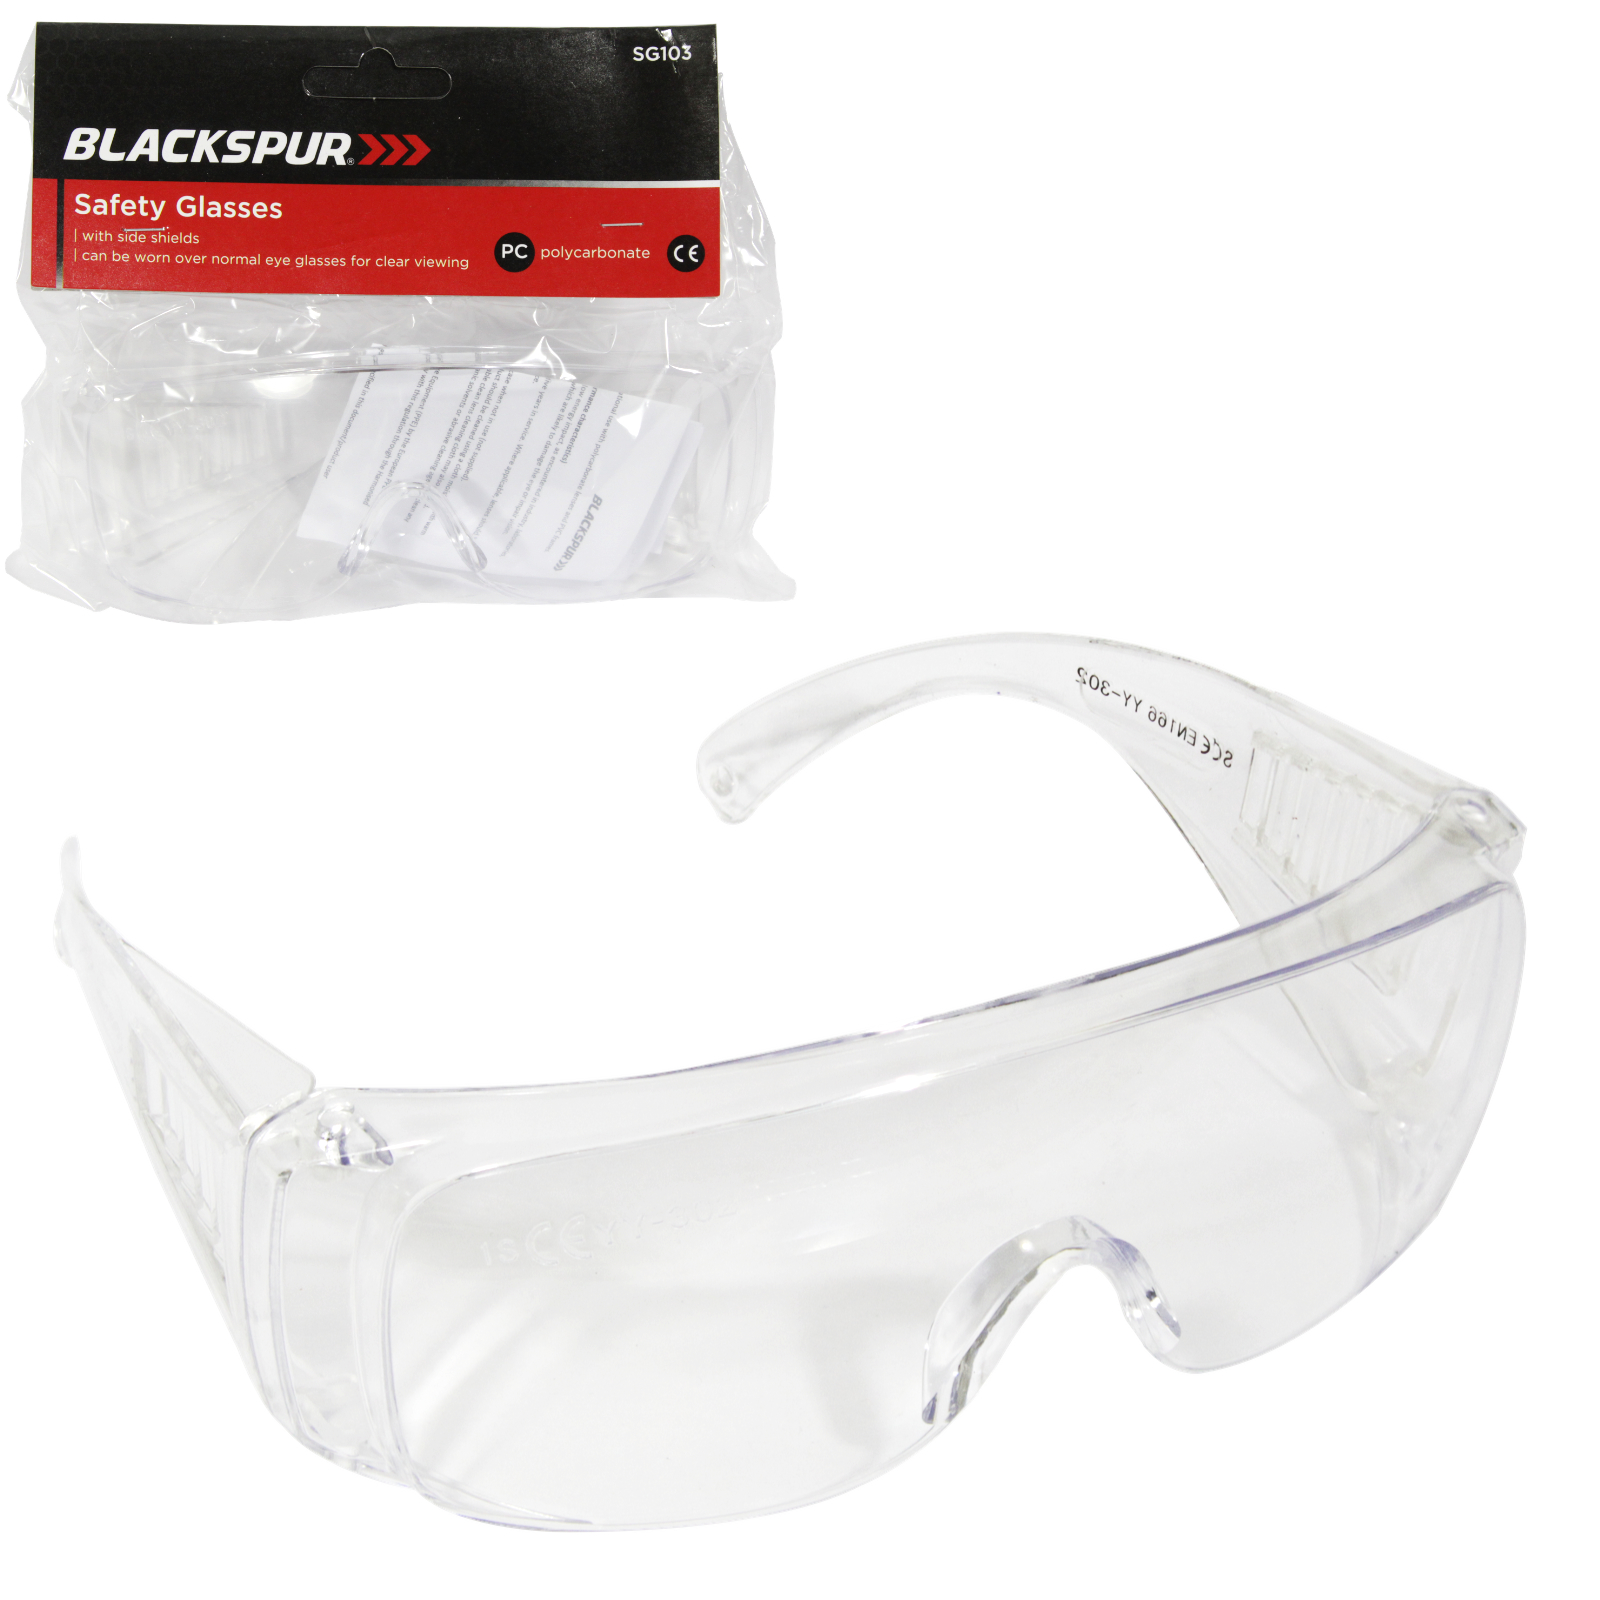 BLACKSPUR SAFTEY GLASSES